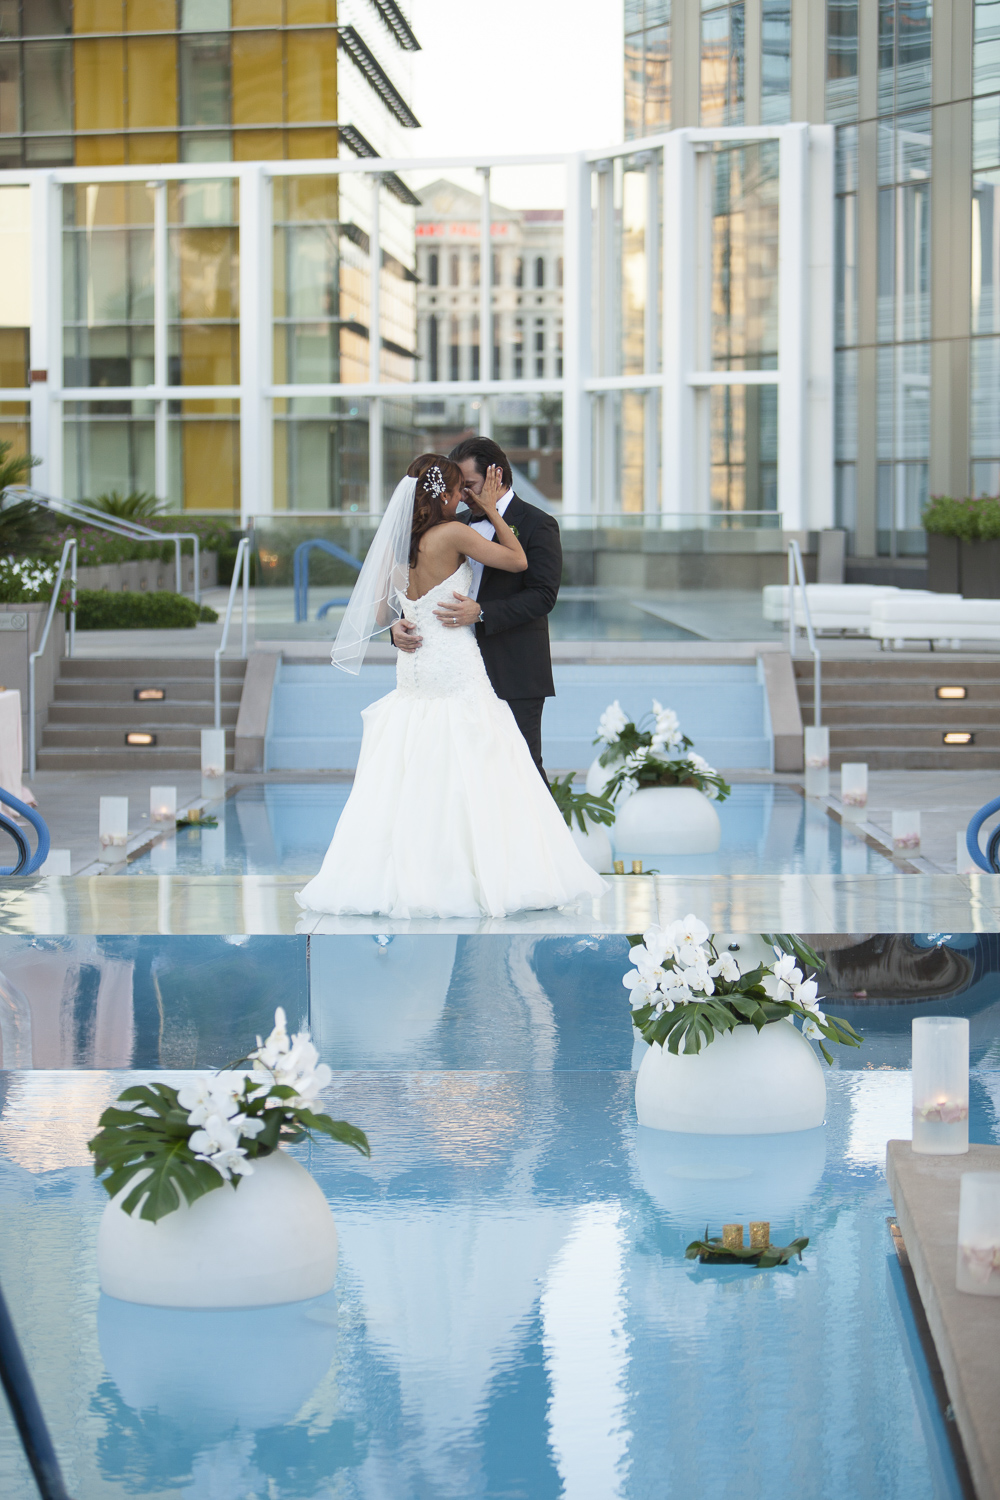 By placing Jess and Juan in the center of the pool, they were able to enjoy their first dance feeling as if they were the only two people in the world.   Las Vegas Wedding at   Mandarin Oriental   |  Photo by  Altf Photography   |  Floral and Decor by  Naakiti Floral   |  Las Vegas Wedding Planner  Andrea Eppolito